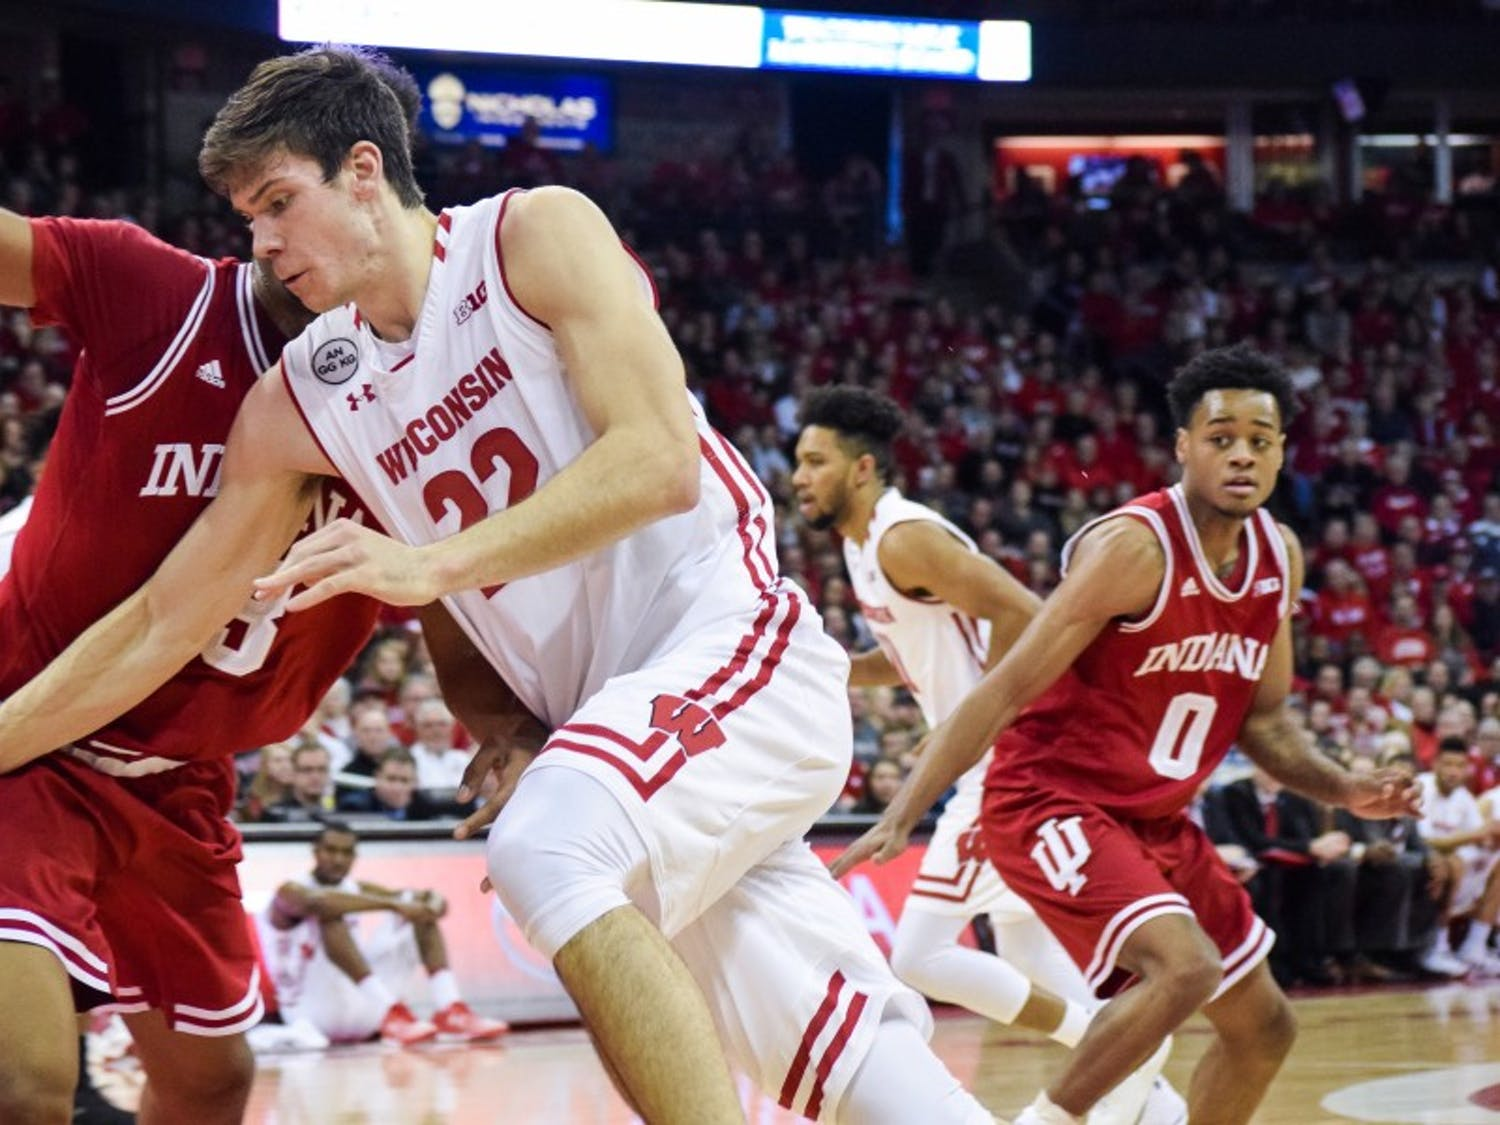 Ethan Happ dominated the Indiana Hoosiers as Wisconsin returned to conference play earlier this week.